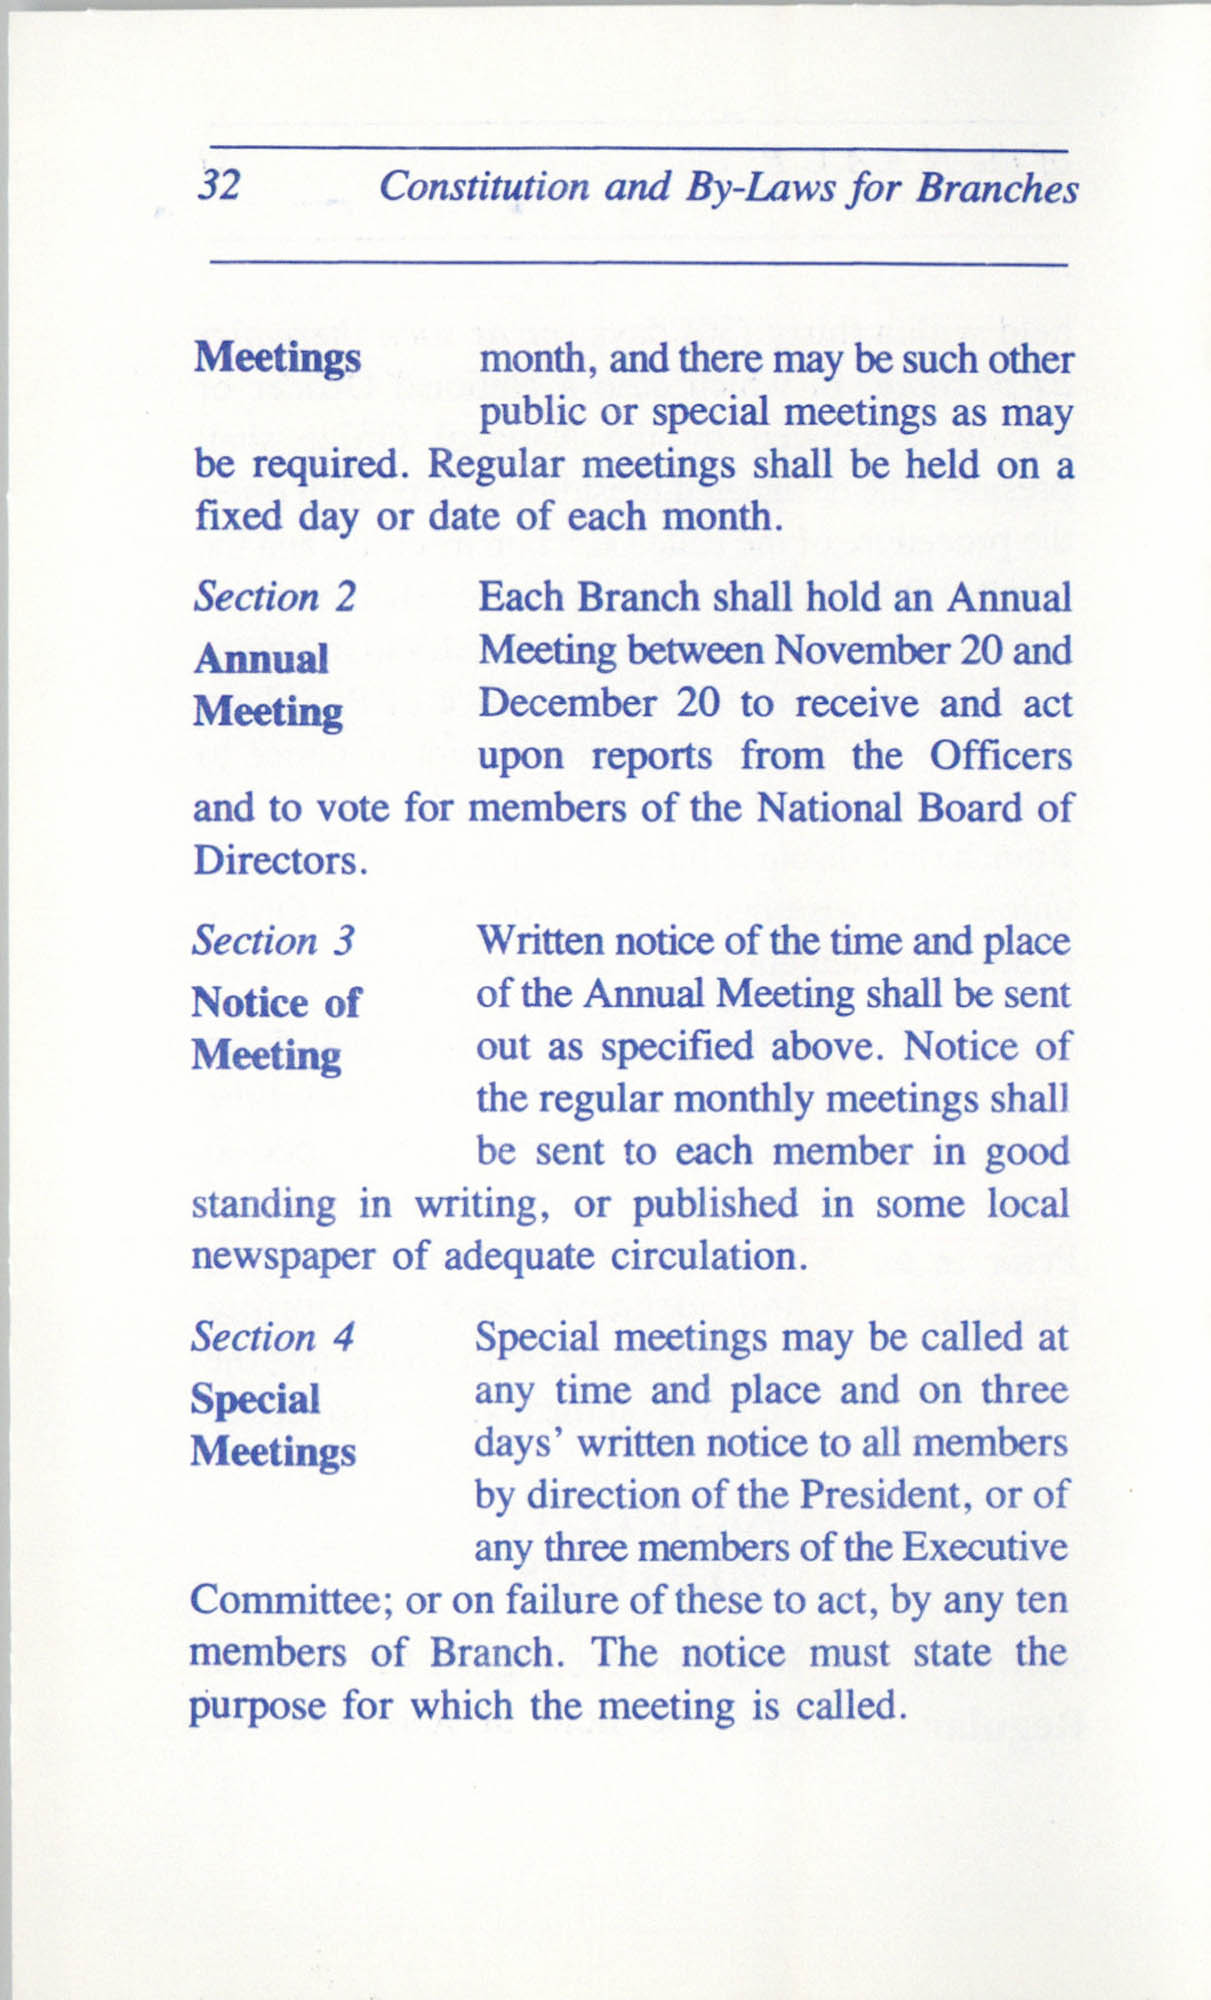 Constitution and By-Laws for Branches of the NAACP, June 1993, Page 32